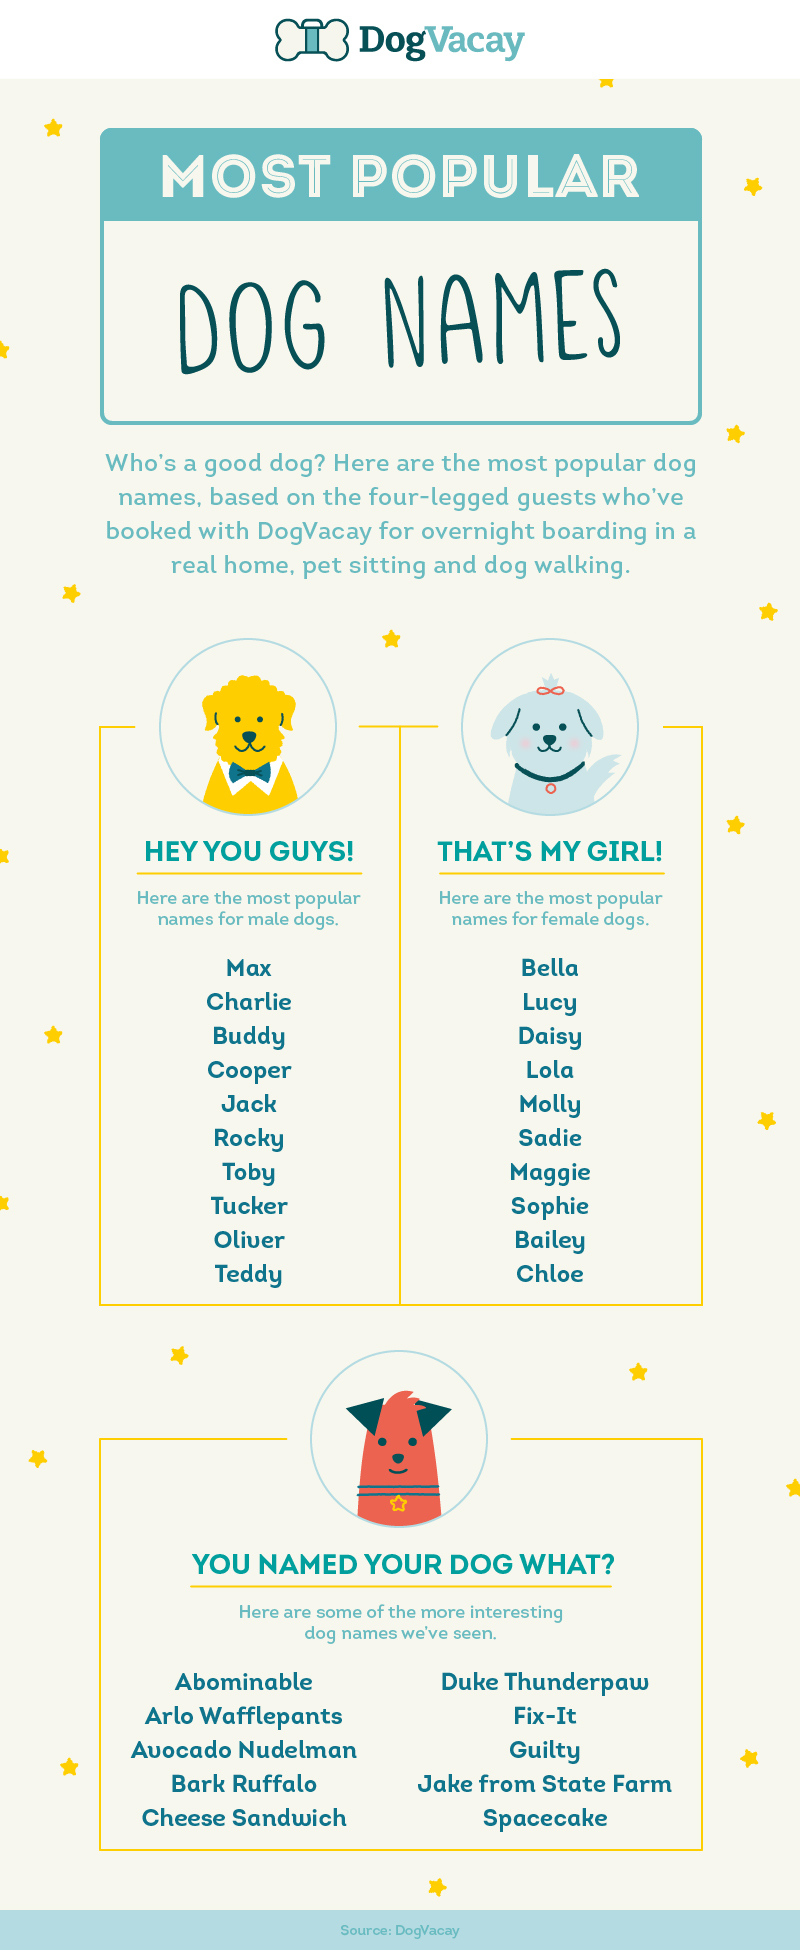 Does your dog's name feature in the most popular dog names